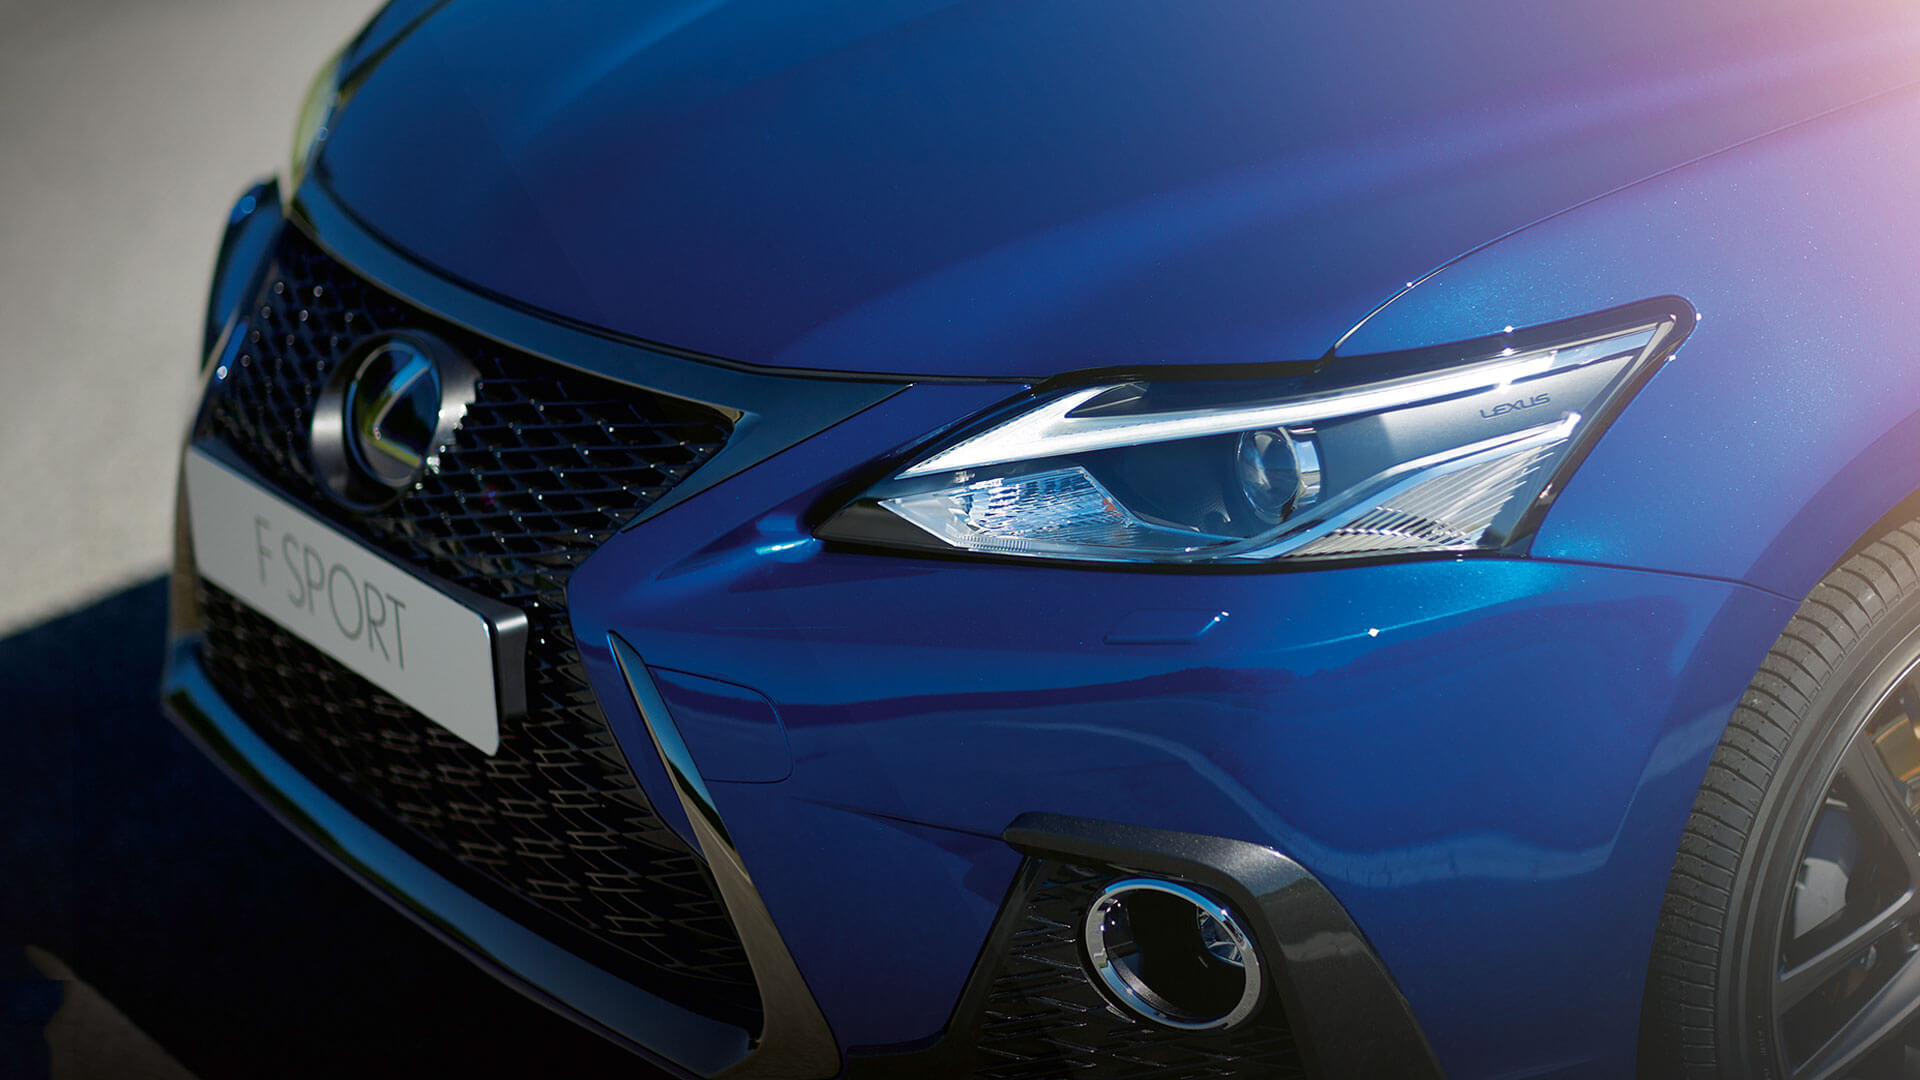 2018 lexus ct 200h my18 gallery 014 exterior